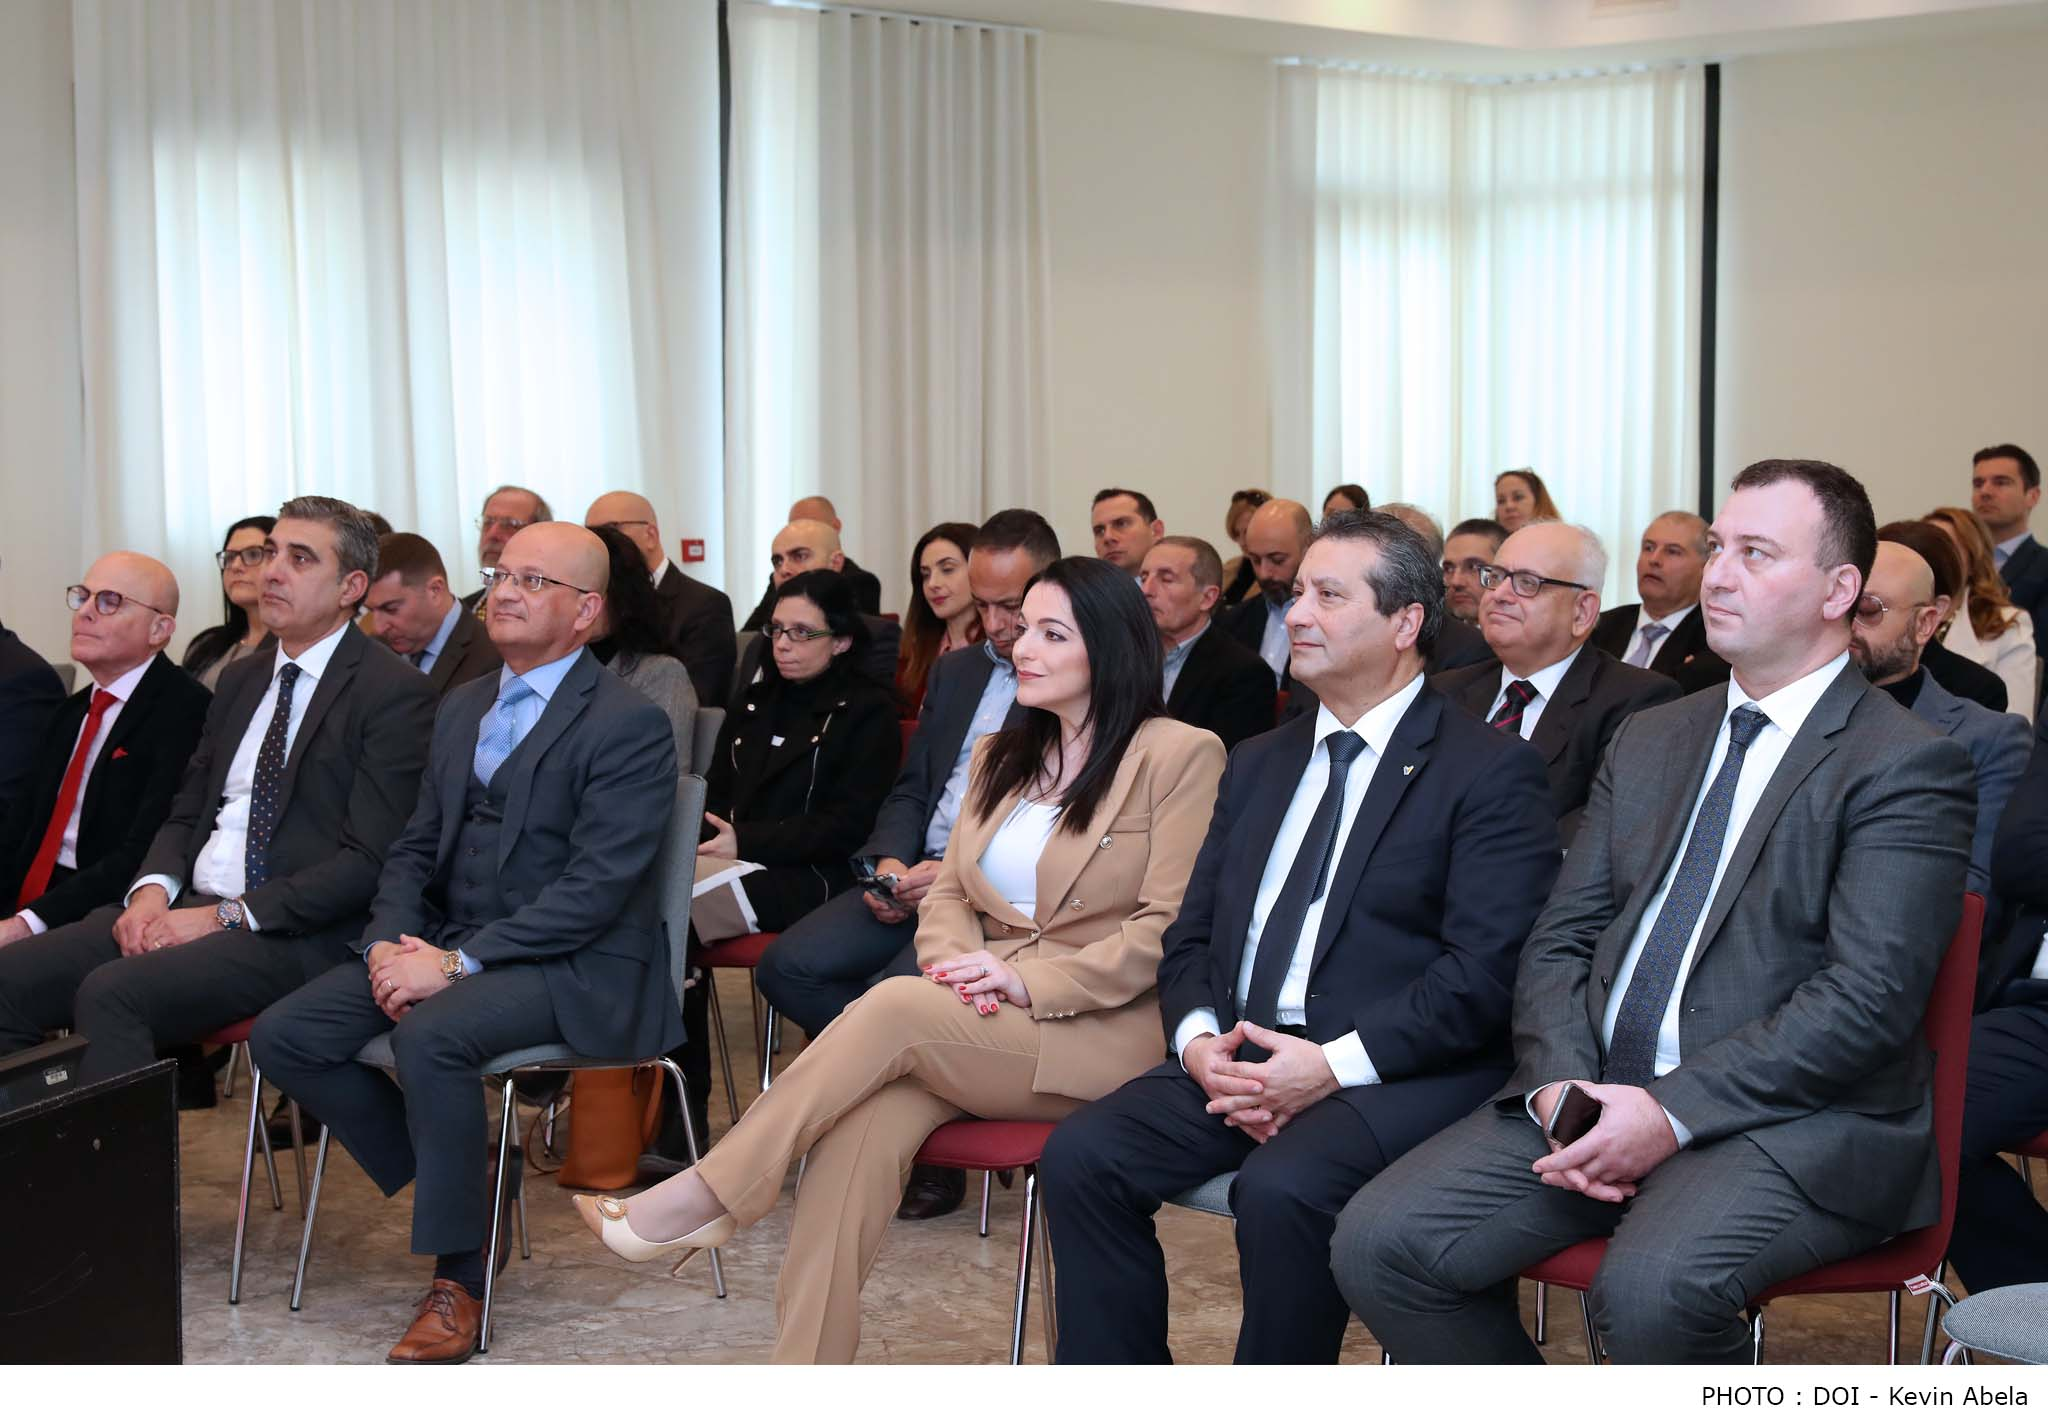 PRESS RELEASE BY THE MINISTRY FOR TOURISM AND CONSUMER PROTECTION Malta doubles its tourism intake over a span of ten years